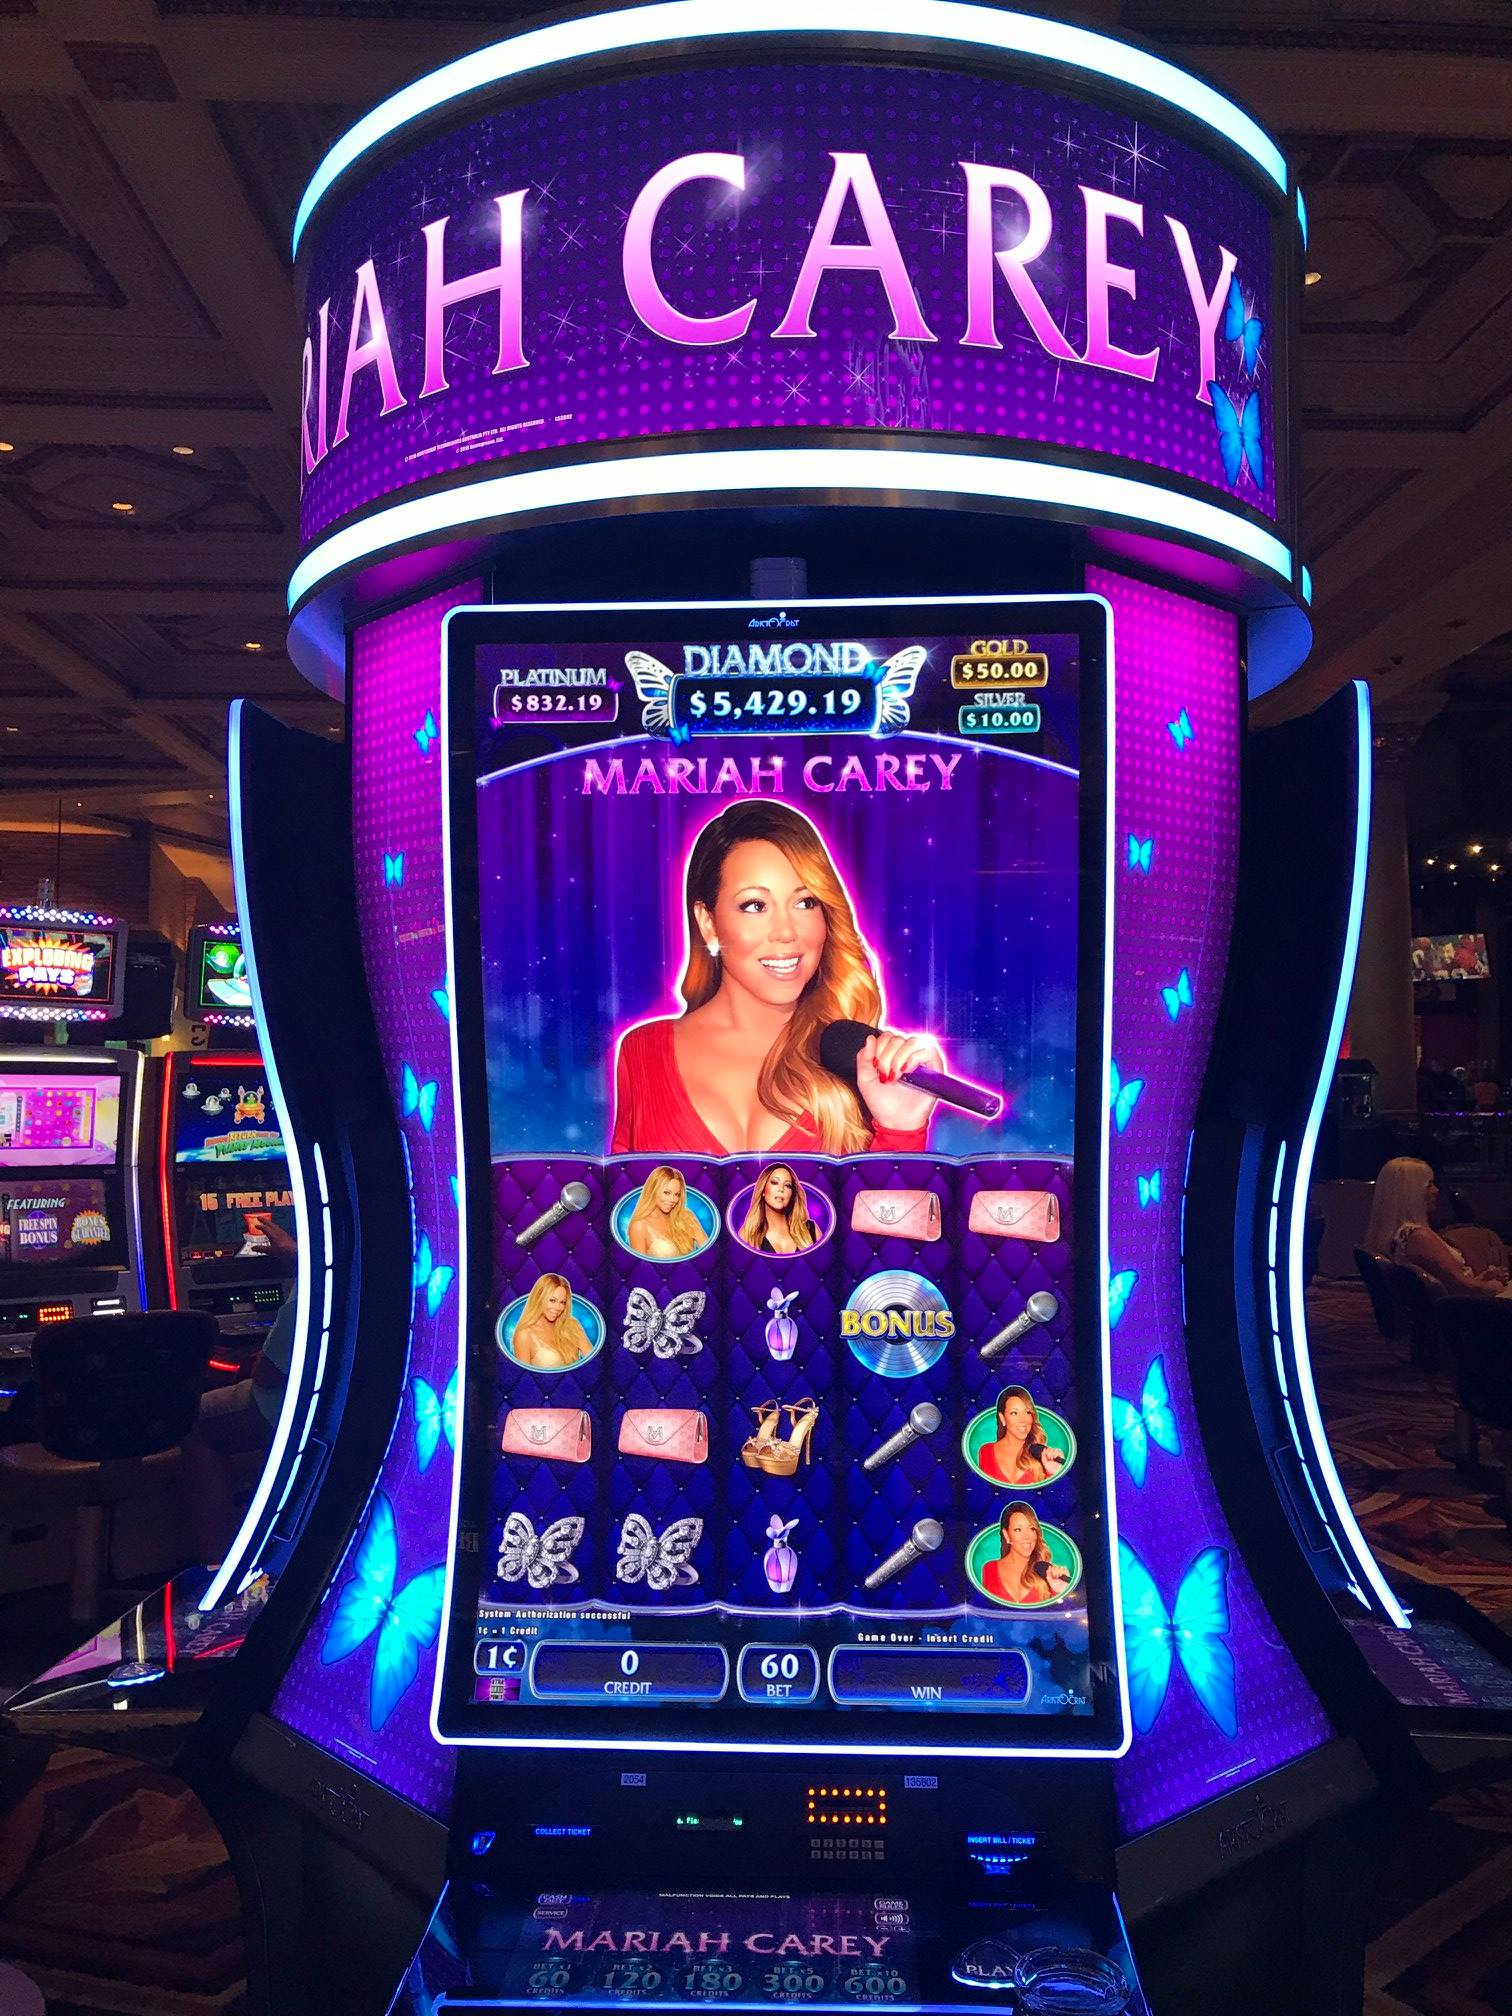 mariah carey slot machine in casino